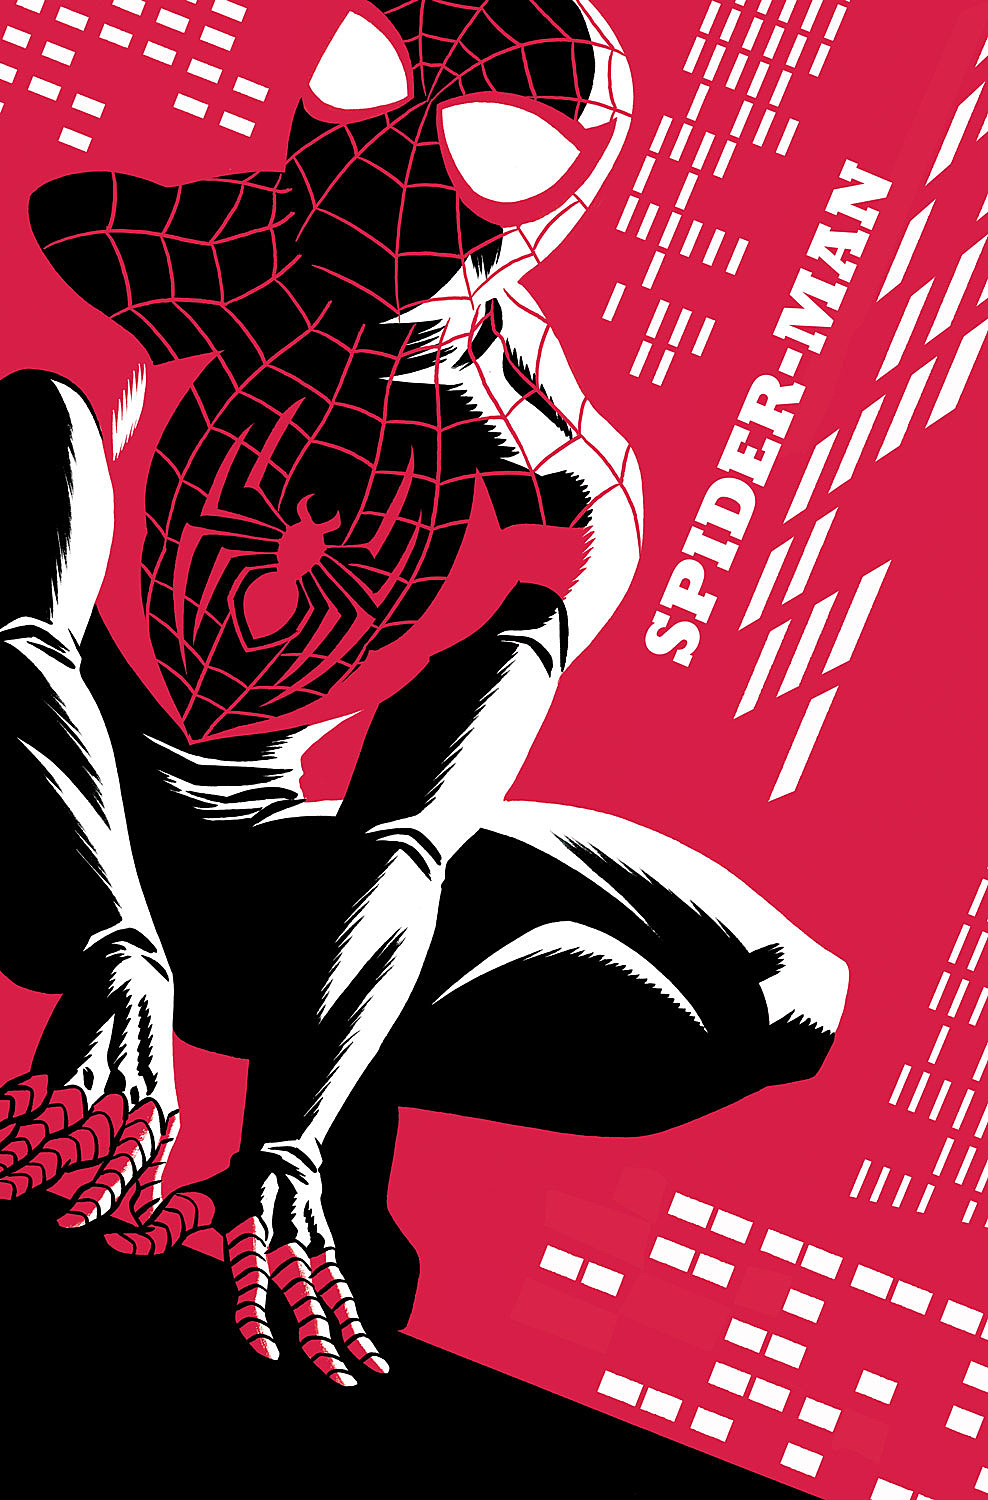 Variant Cover by Michael Cho